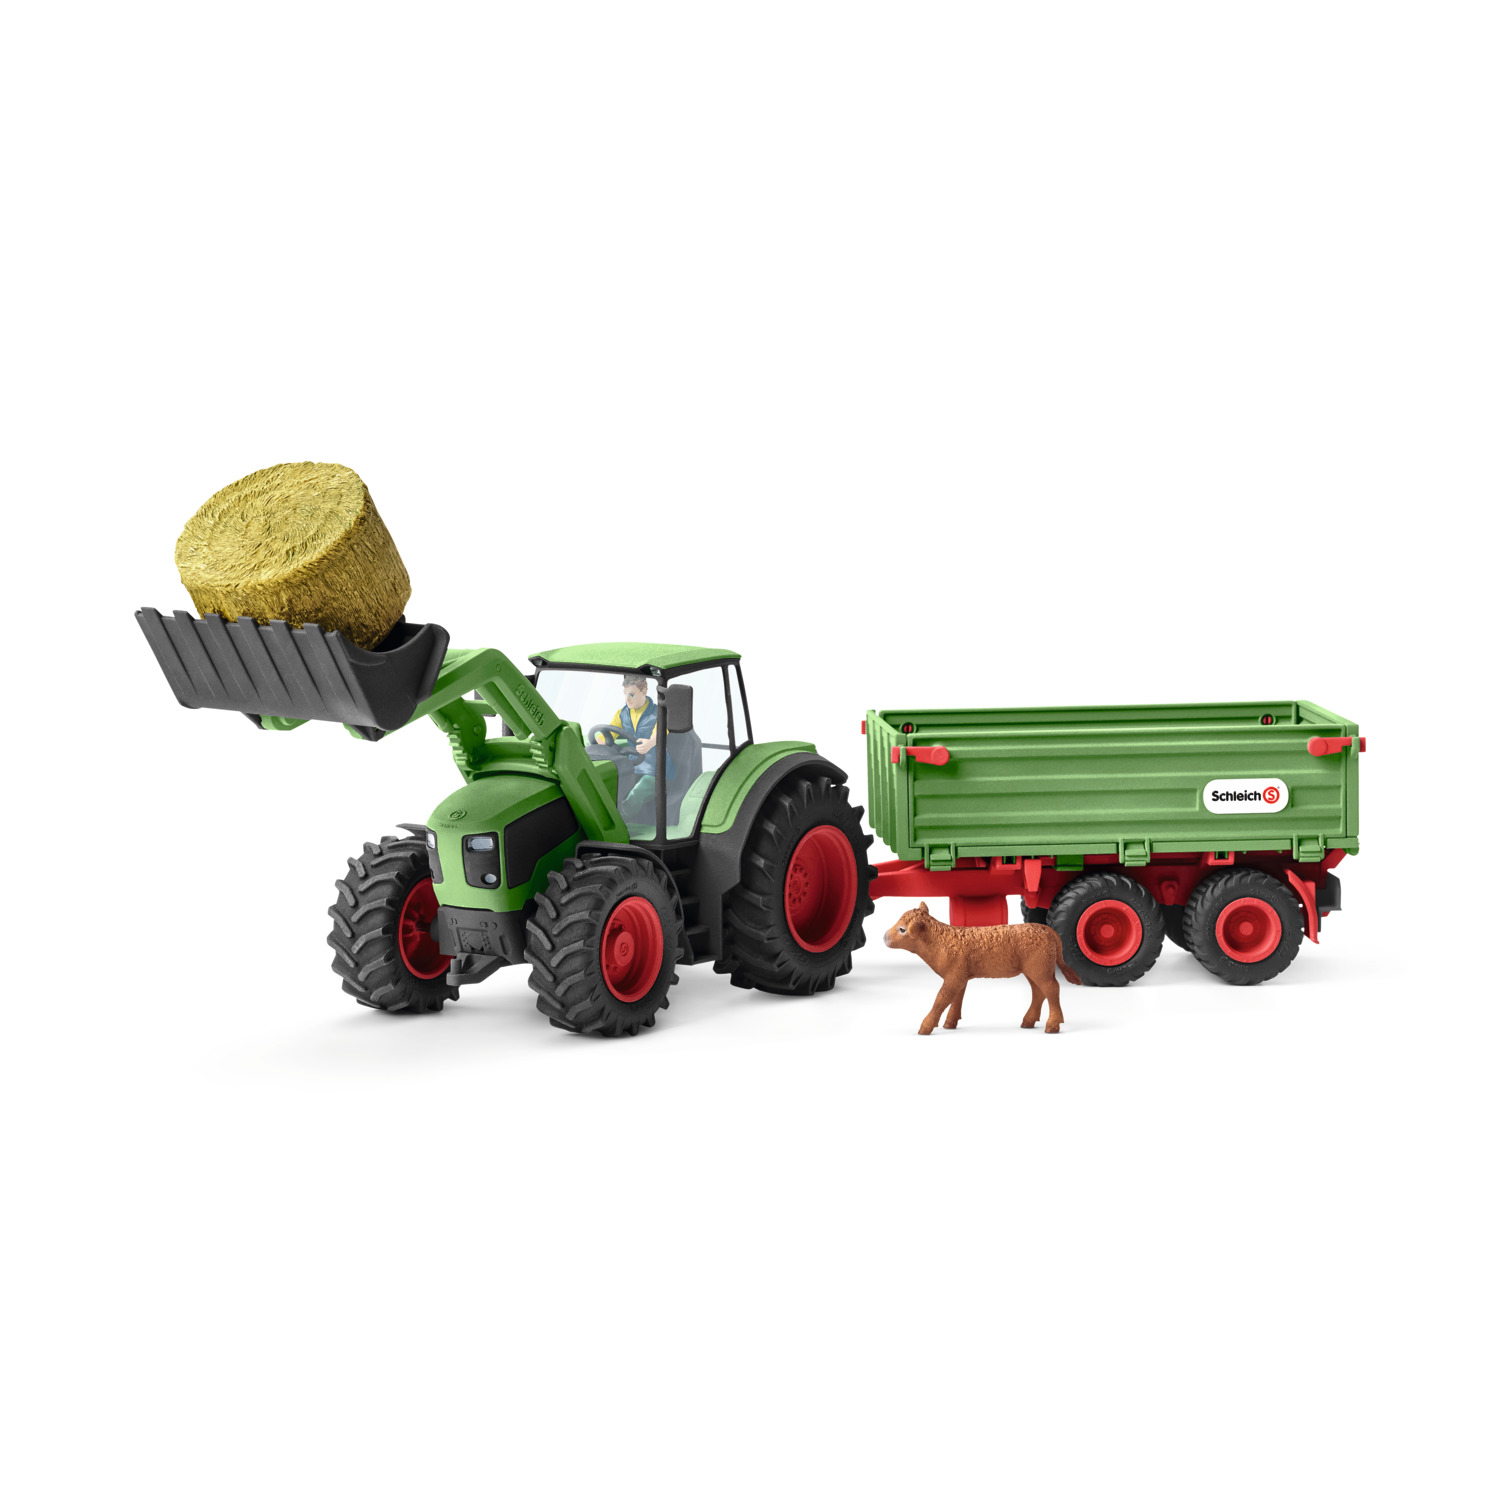 Schleich Farm World, Tractor with Trailer Toy Figure by Schleich USA Inc